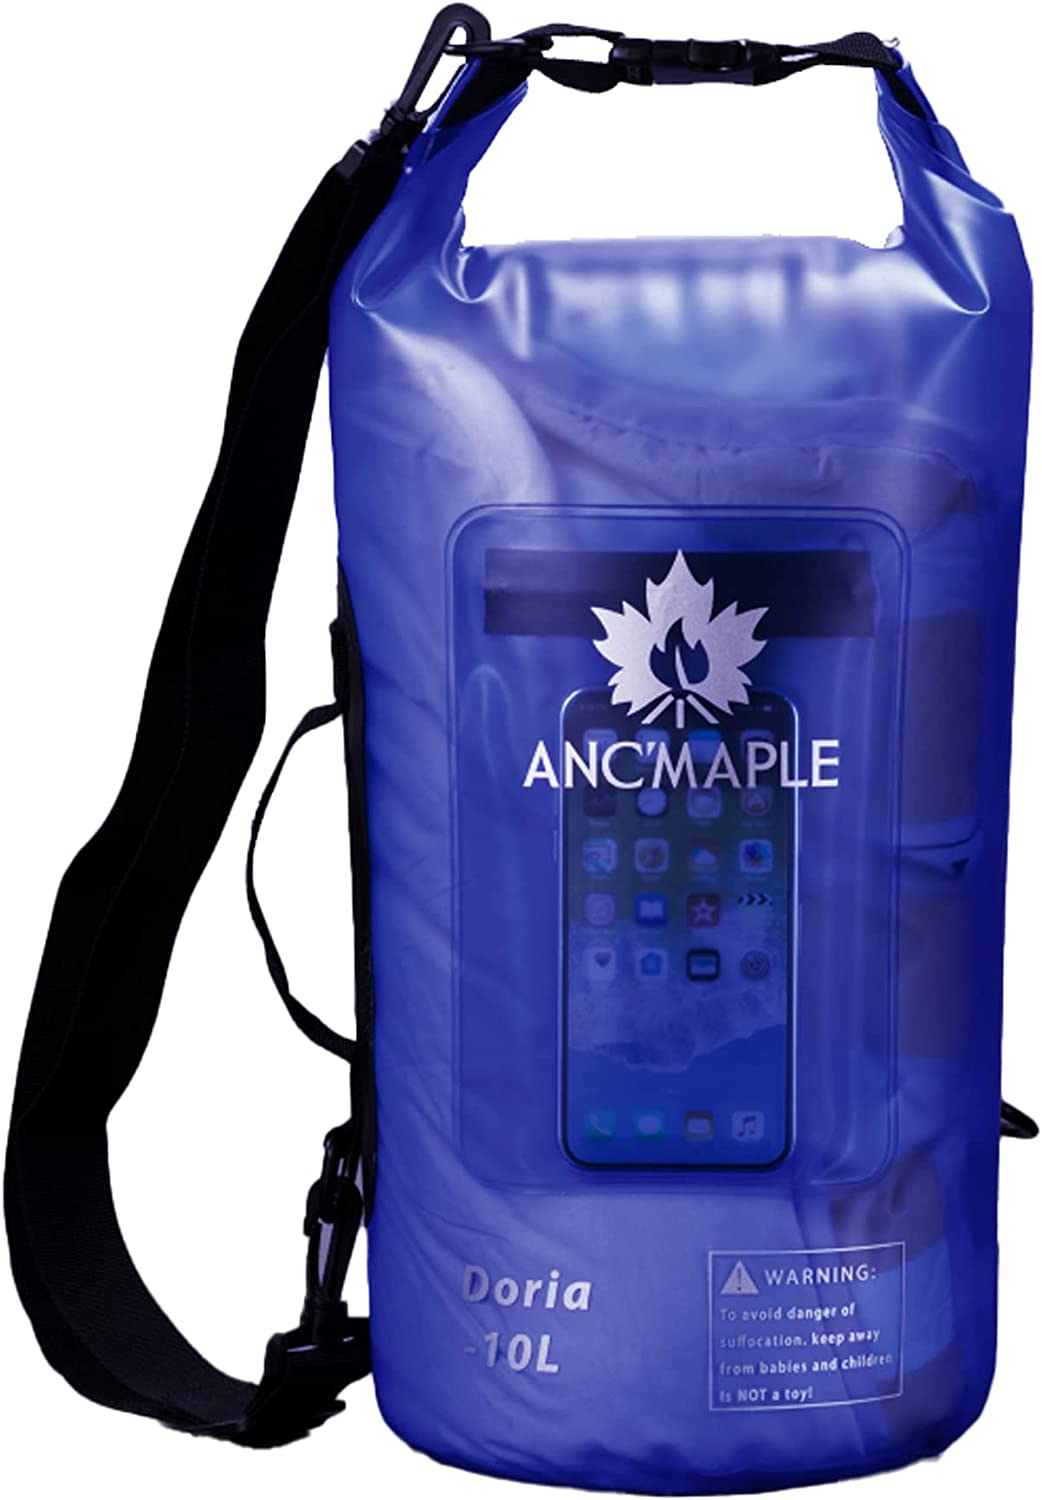 Ancmaple Waterproof Dry Bag Cheap bargain 10L Max 44% OFF 15L Translucent Storage Frosted